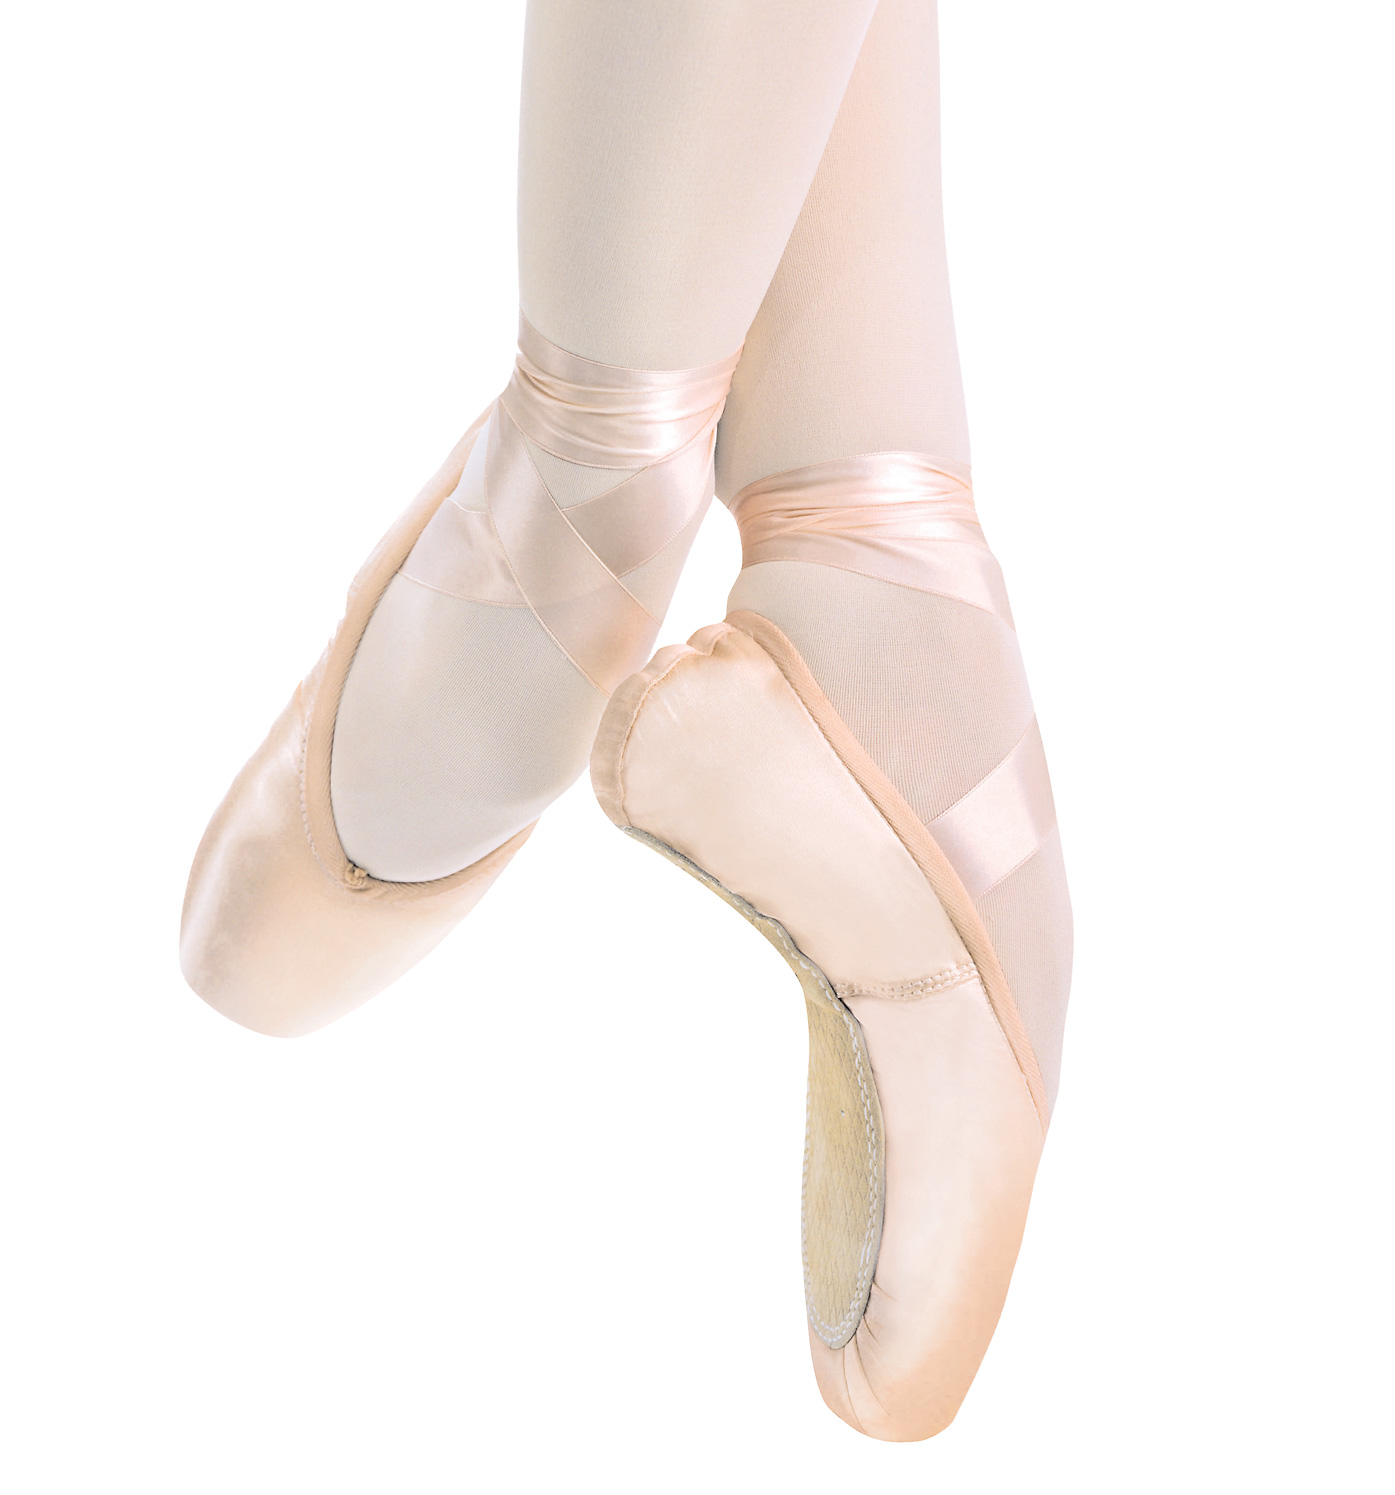 elite pointe shoes   pointe shoes discountdance